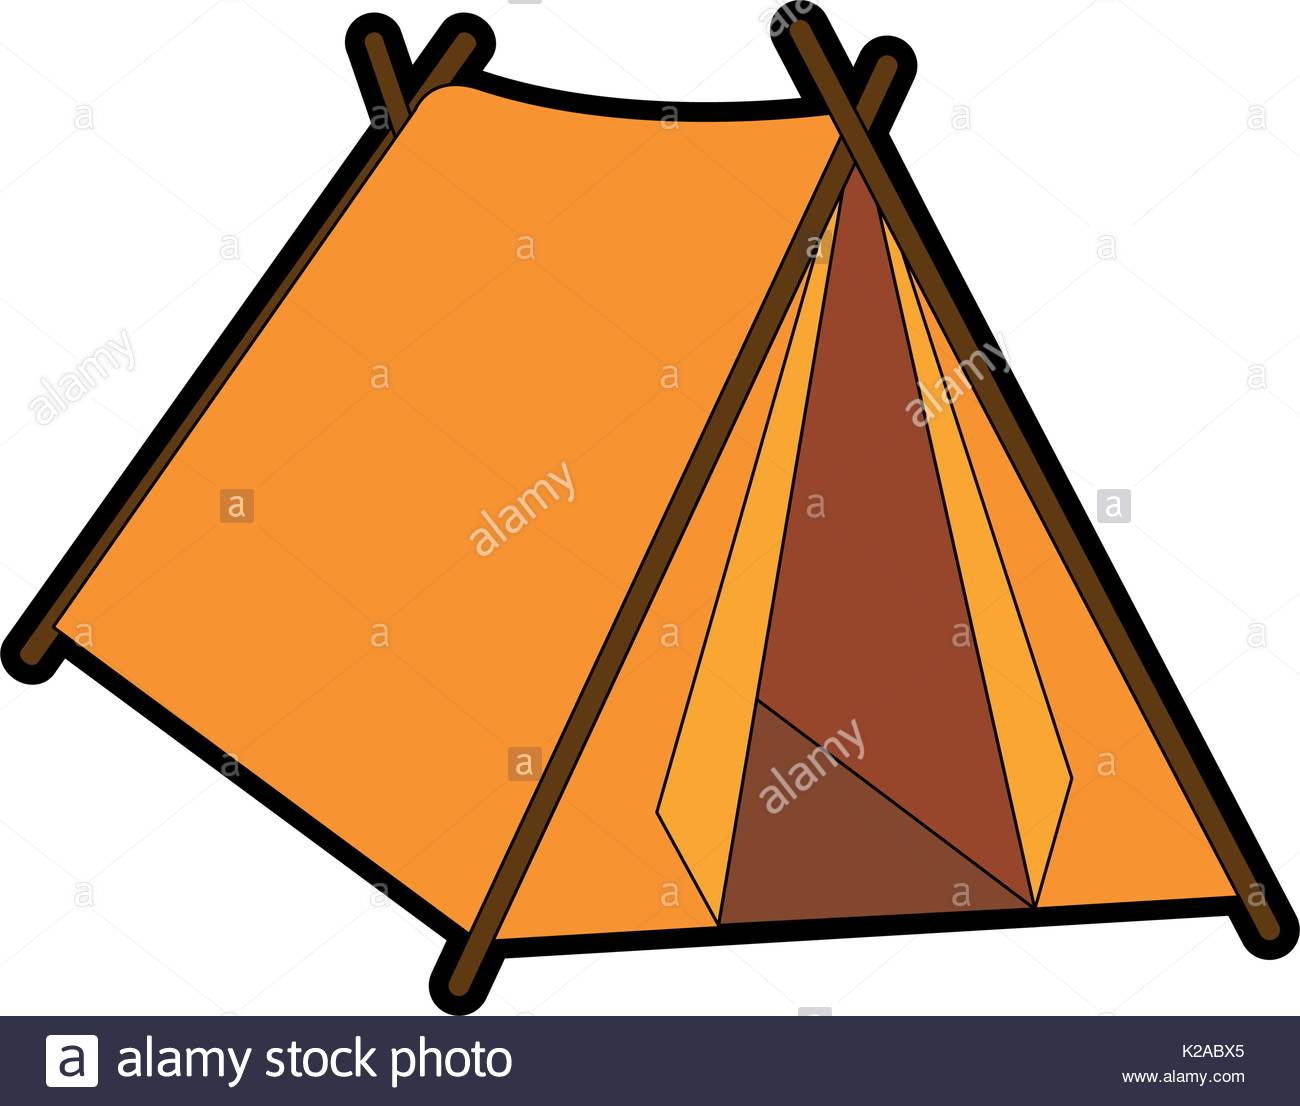 1300x1106 Shelter Tent Icon Stock Vector Art Amp Illustration, Vector Image